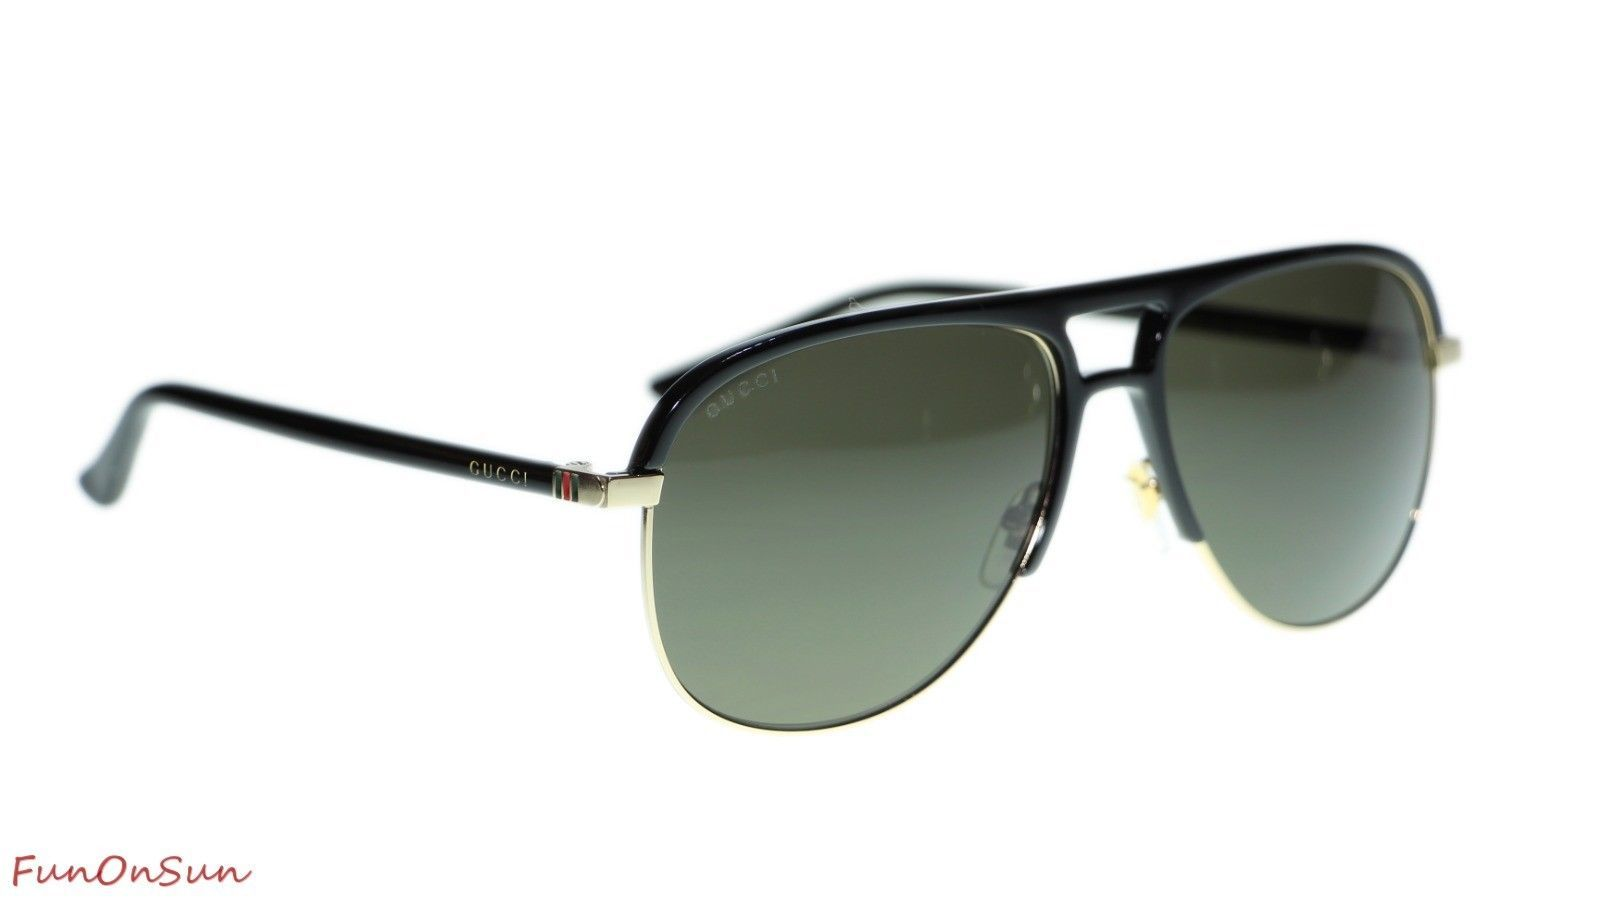 a9f82b56234 NEW Gucci Men s Sunglasses GG0292S 001 Black Grey Lens Pilot 60mm Authentic